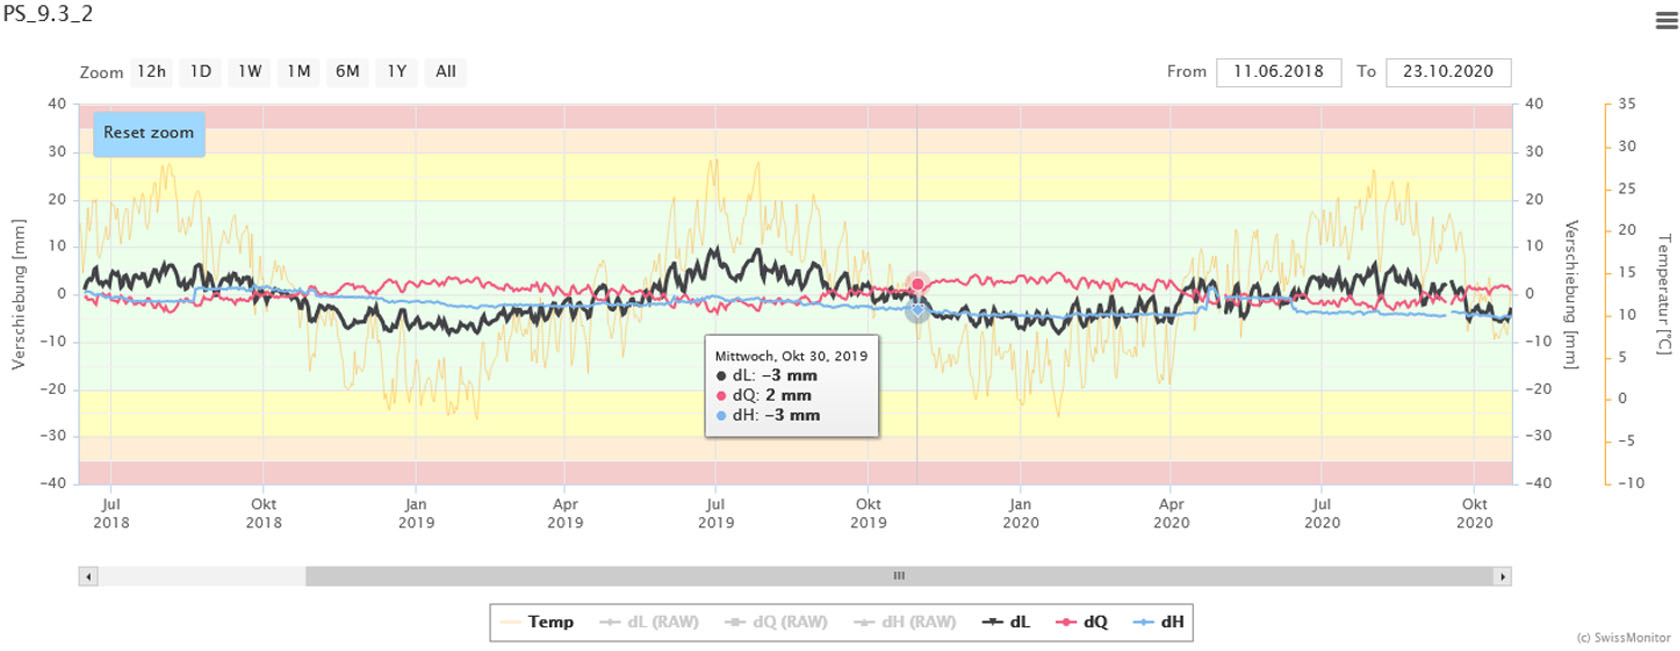 Digging deeper with monitoring - Terradata & Leica Geosystems AG - Case Study - Deformation of time series